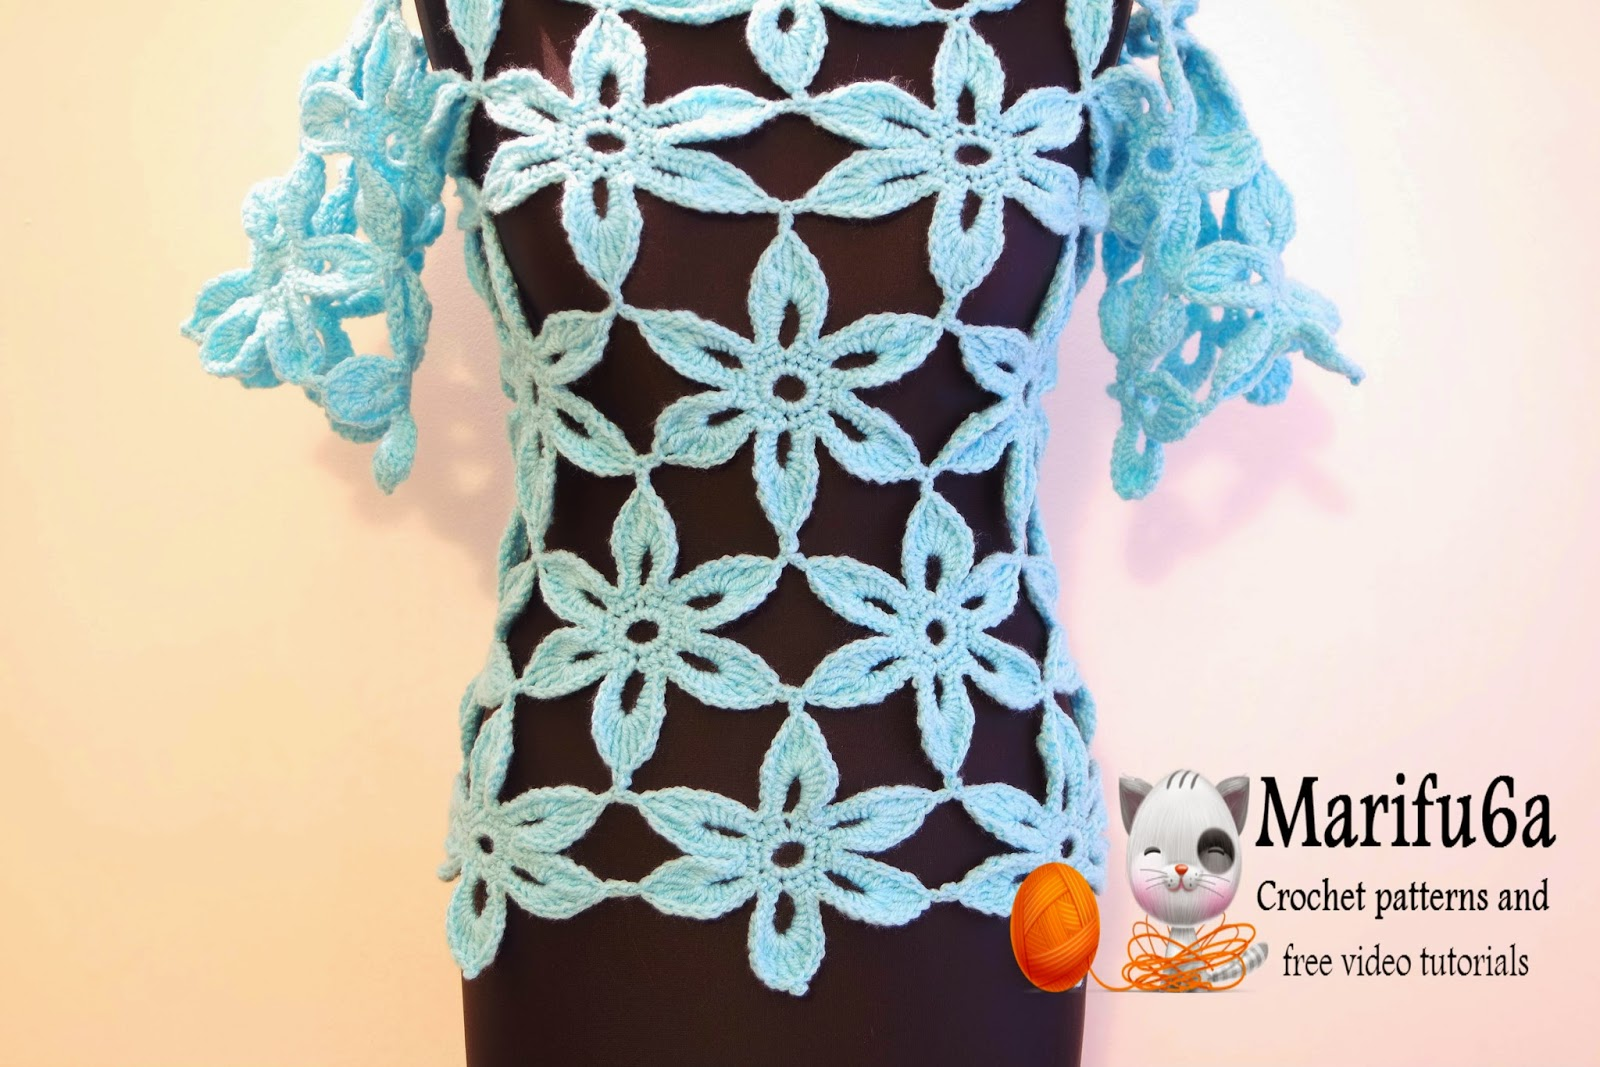 Crochet Stitches Sp : Free crochet patterns and video tutorials: How to crochet flower tunic ...